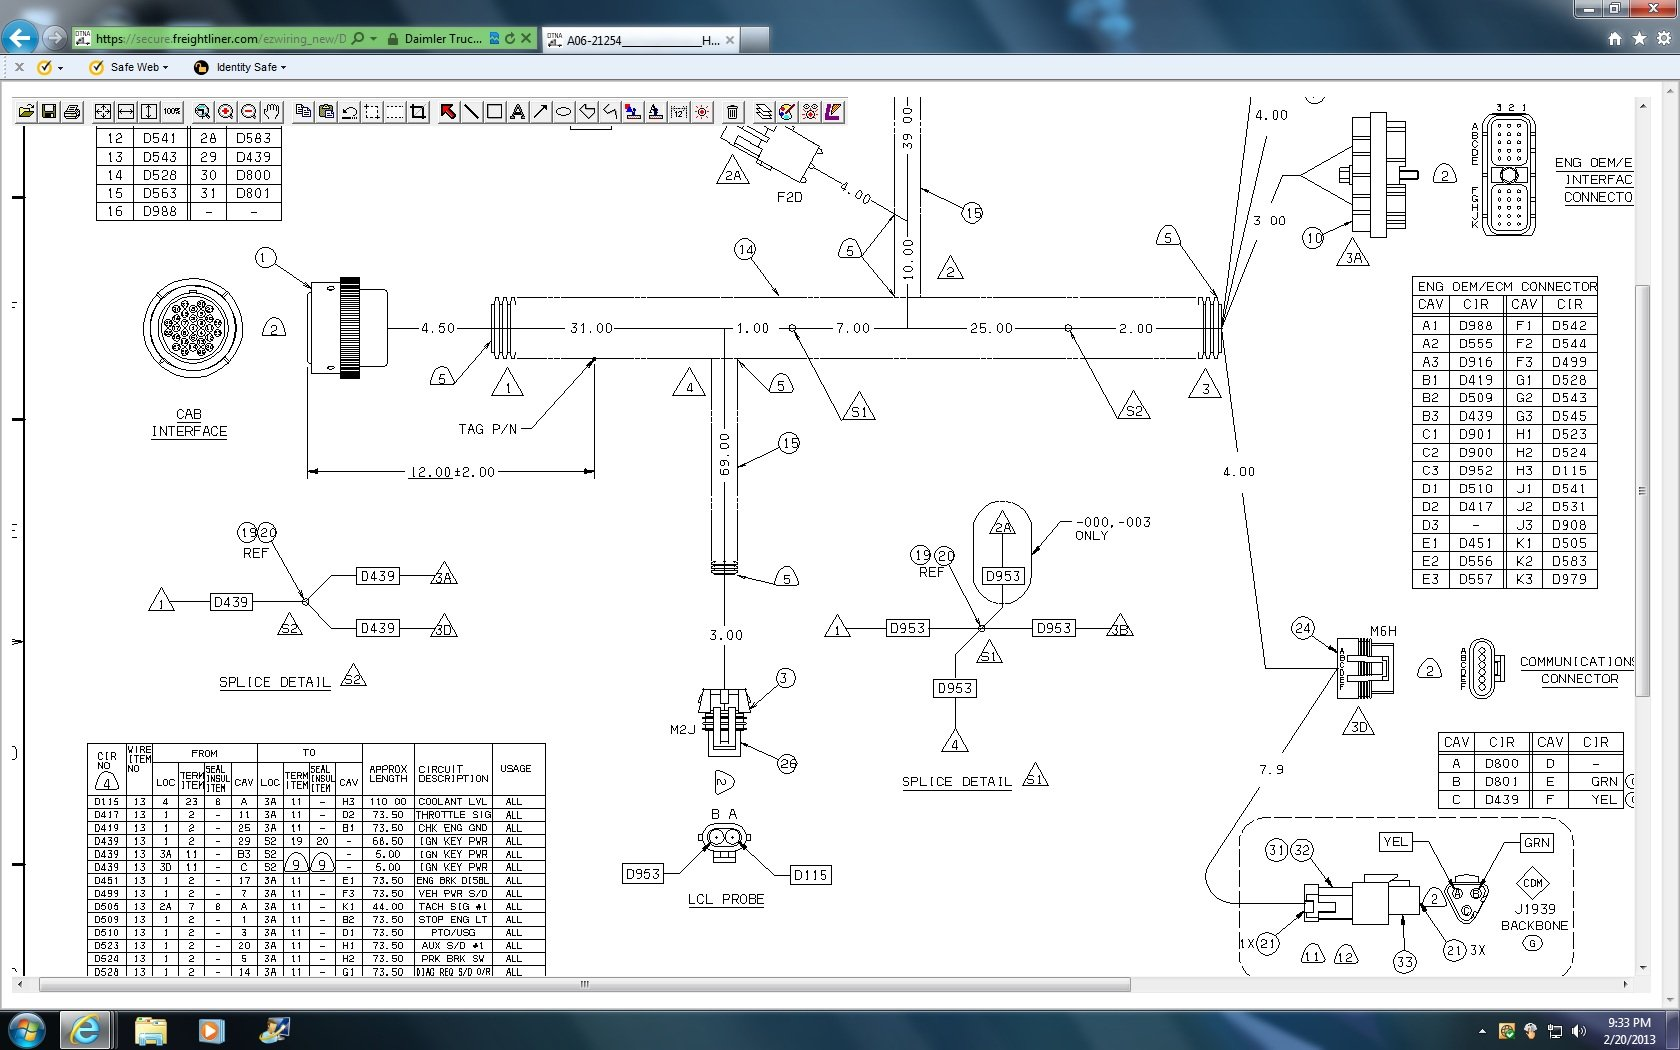 Freightliner Fld120 Starter Wiring Diagram - Wiring Diagrams on